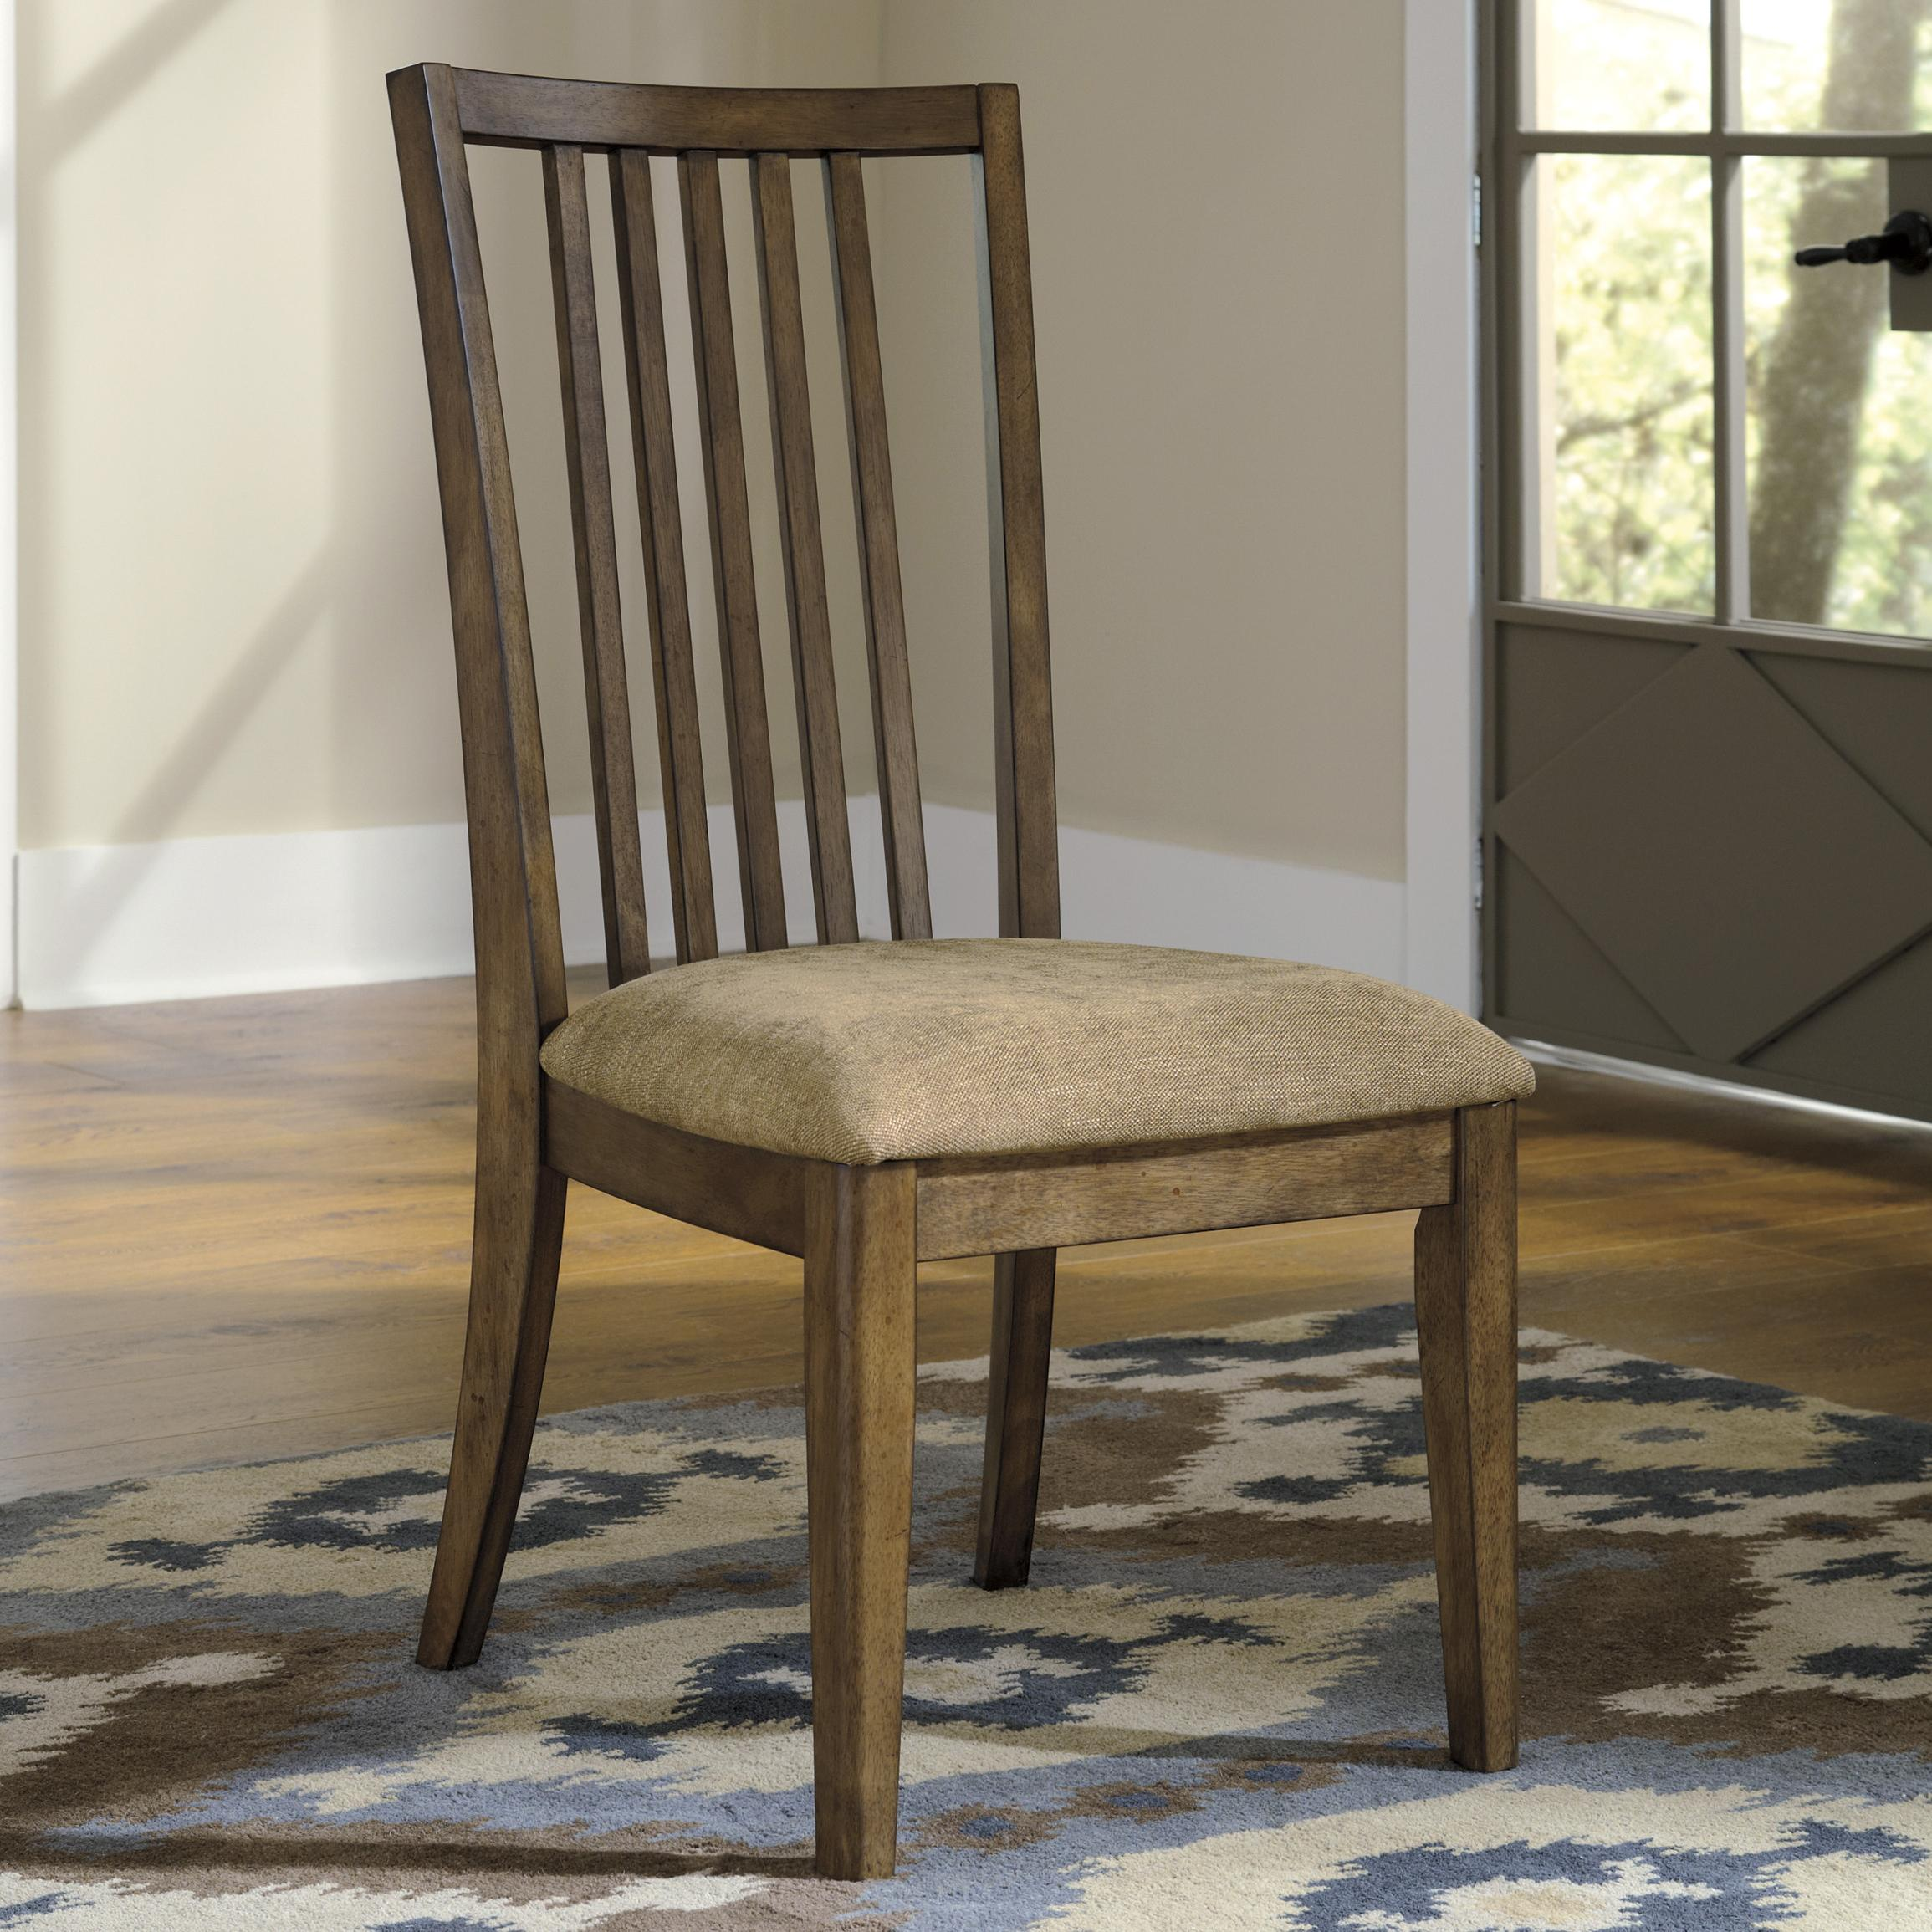 Signature Design by Ashley Birnalla Dining Upholstered Side Chair - Item Number: D585-01